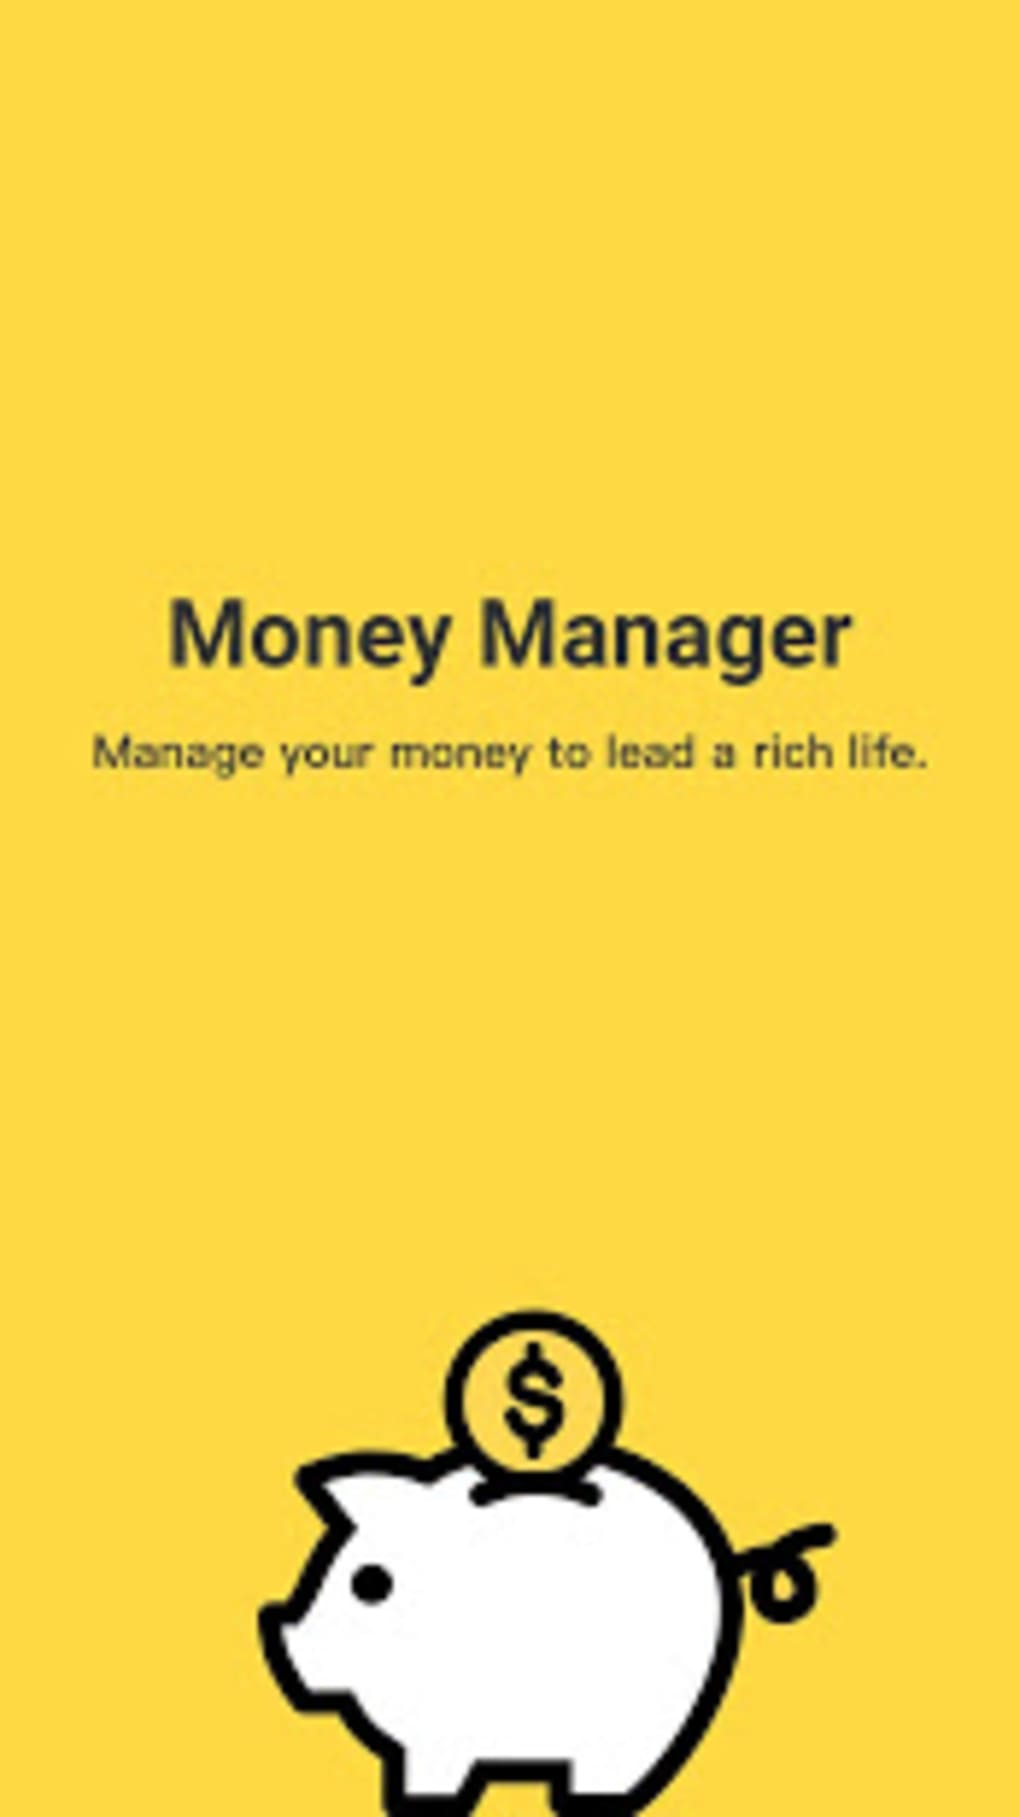 money manager expense and budget